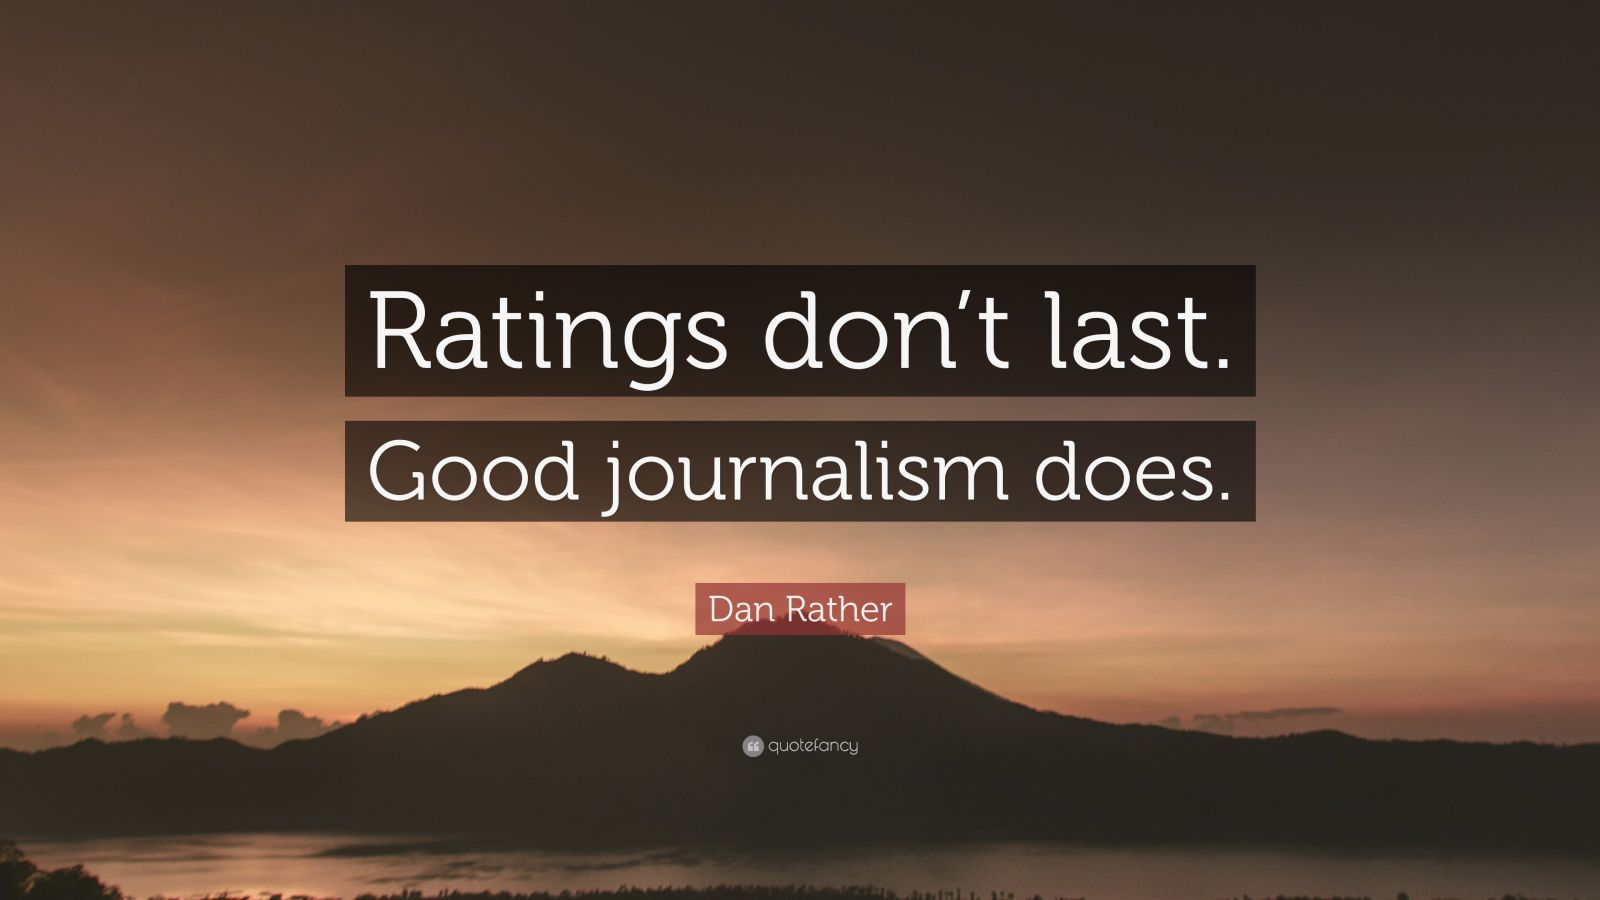 the traits of good journalism Journalism has changed in recent decades, as technological advancements continue to influence consumers' media consumption habits while there may be new characteristics to the field, many basic tenets of journalism remain.